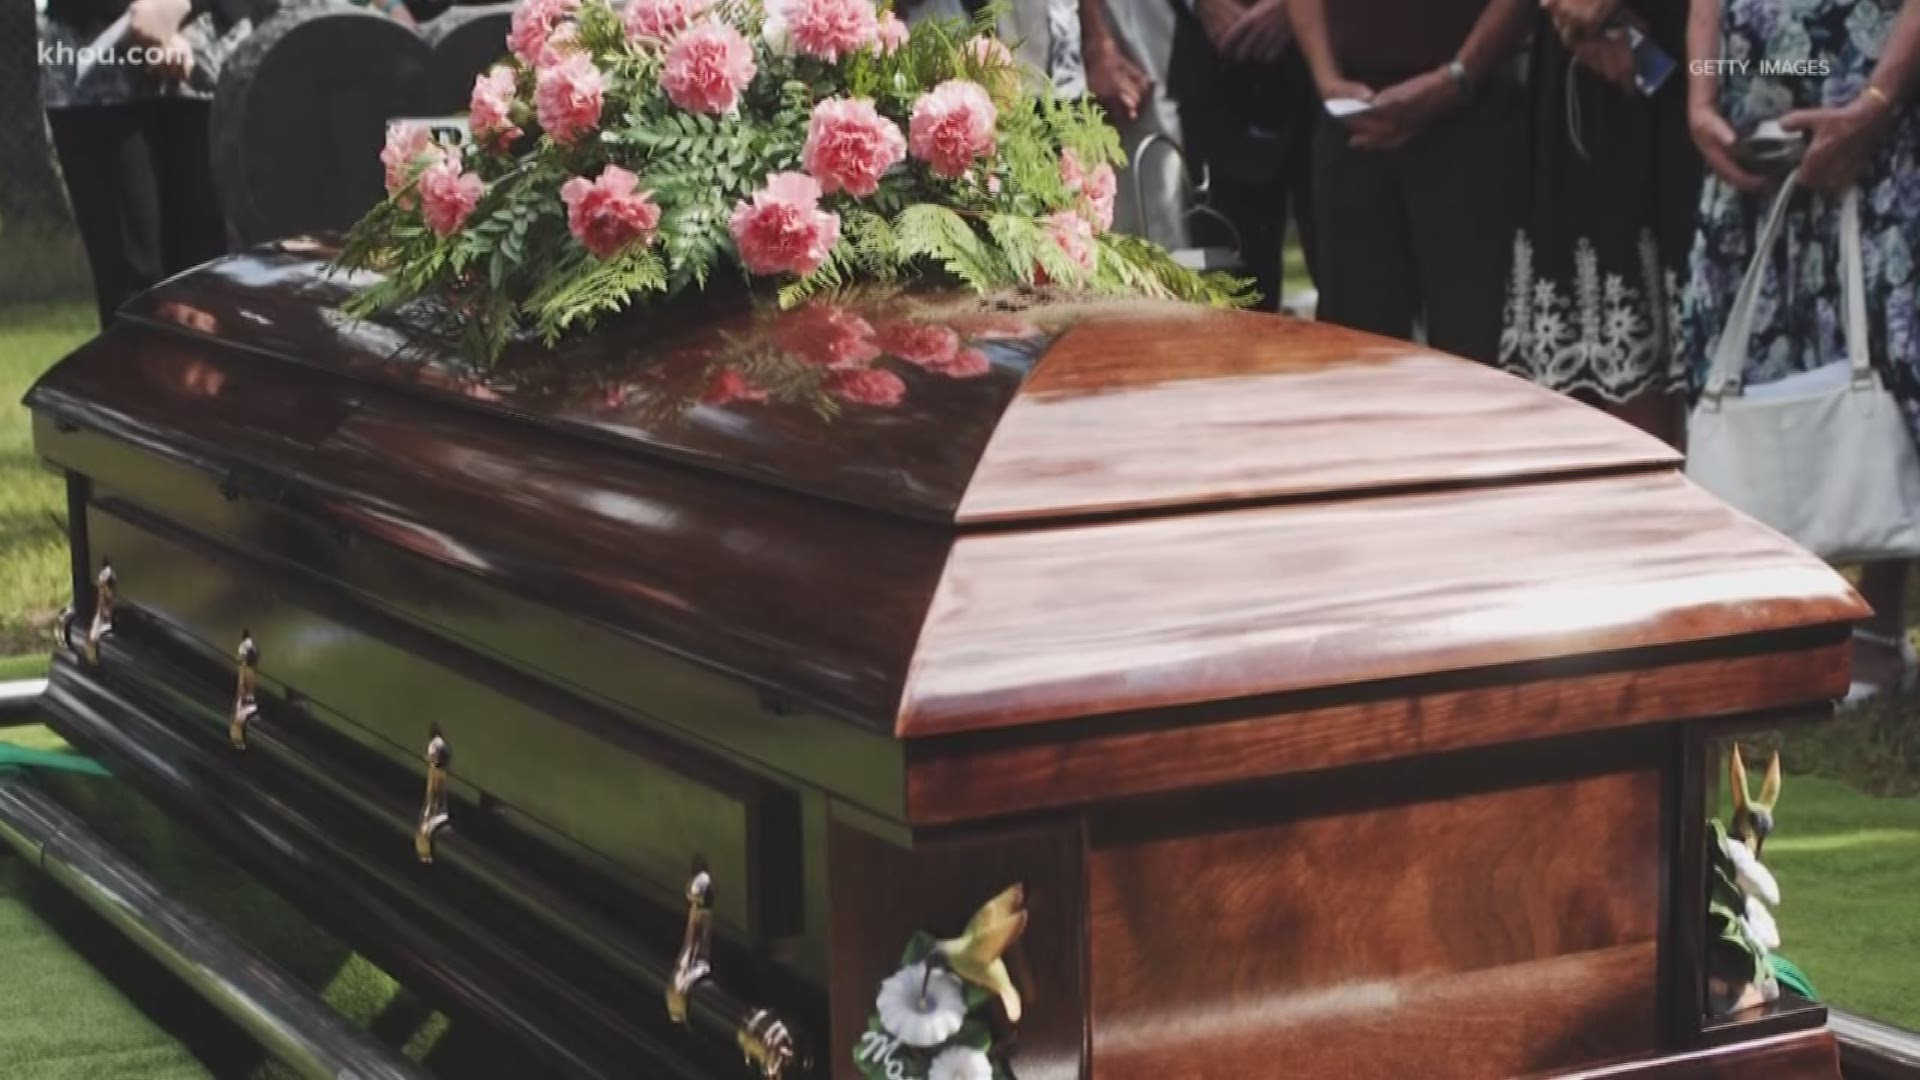 Funeral workers concerned about not getting enough PPE during coronavirus  pandemic | khou.com